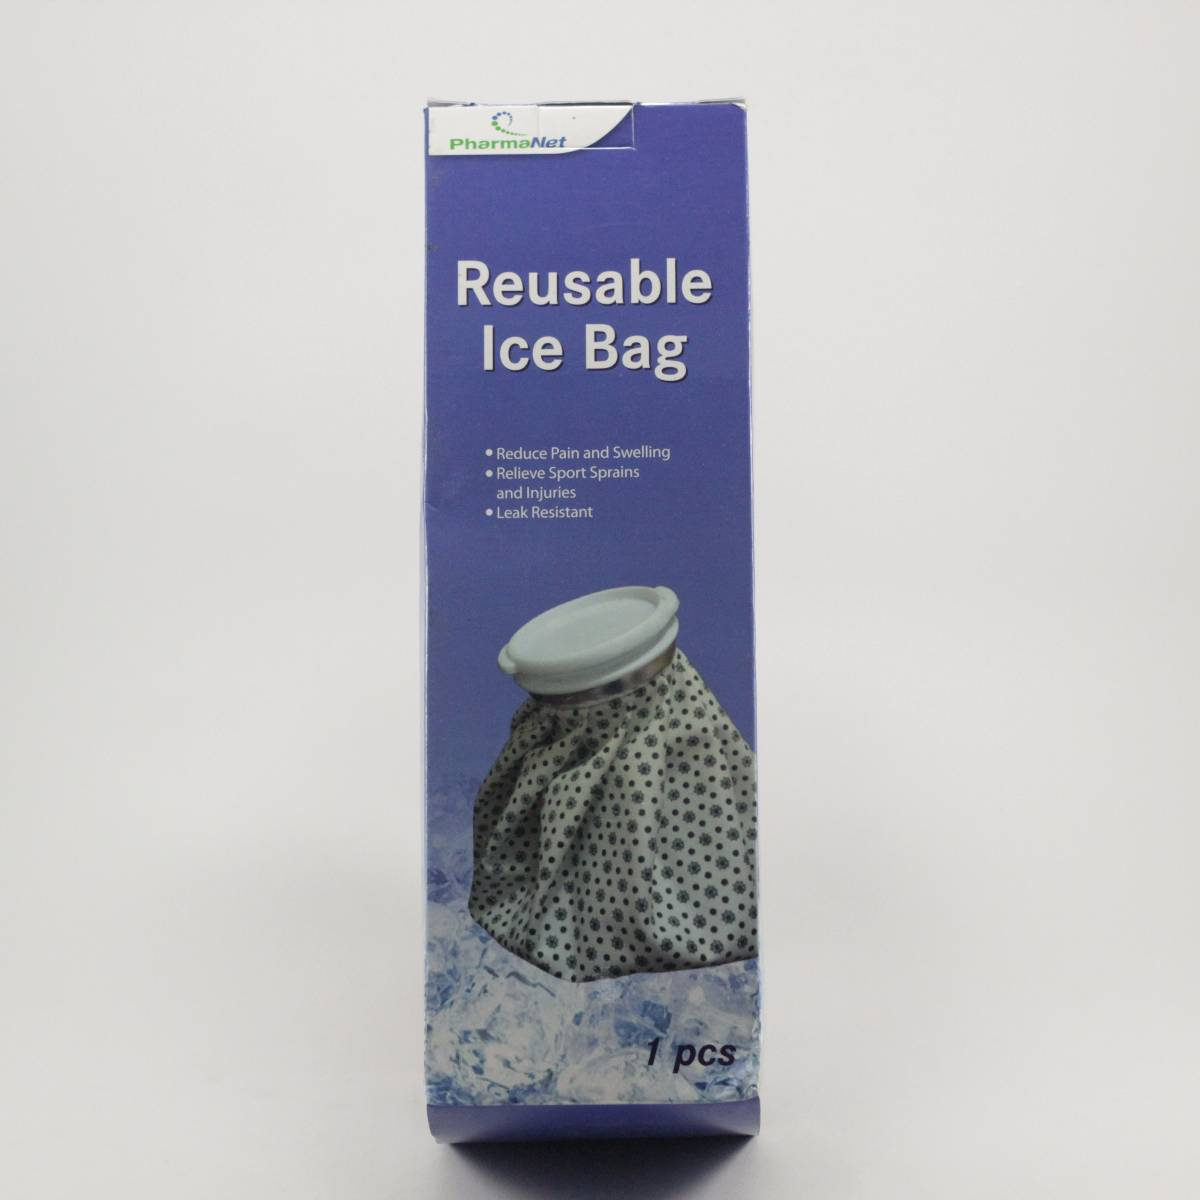 Pharma Net Reusable Ice Bag/alat Kompres